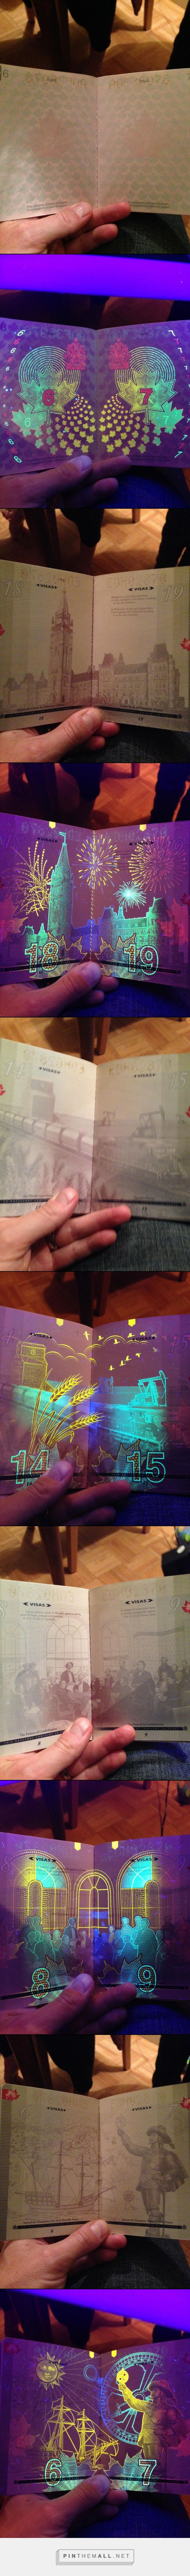 Canadian passport under a UV black light// Uncovered that the Canadian government had hidden a PARTY in its pages// http://www.buzzfeed.com/tanyachen/canadian-passport-black-light-party#.xhDPzdyYr http://imgur.com/gallery/3u8xP